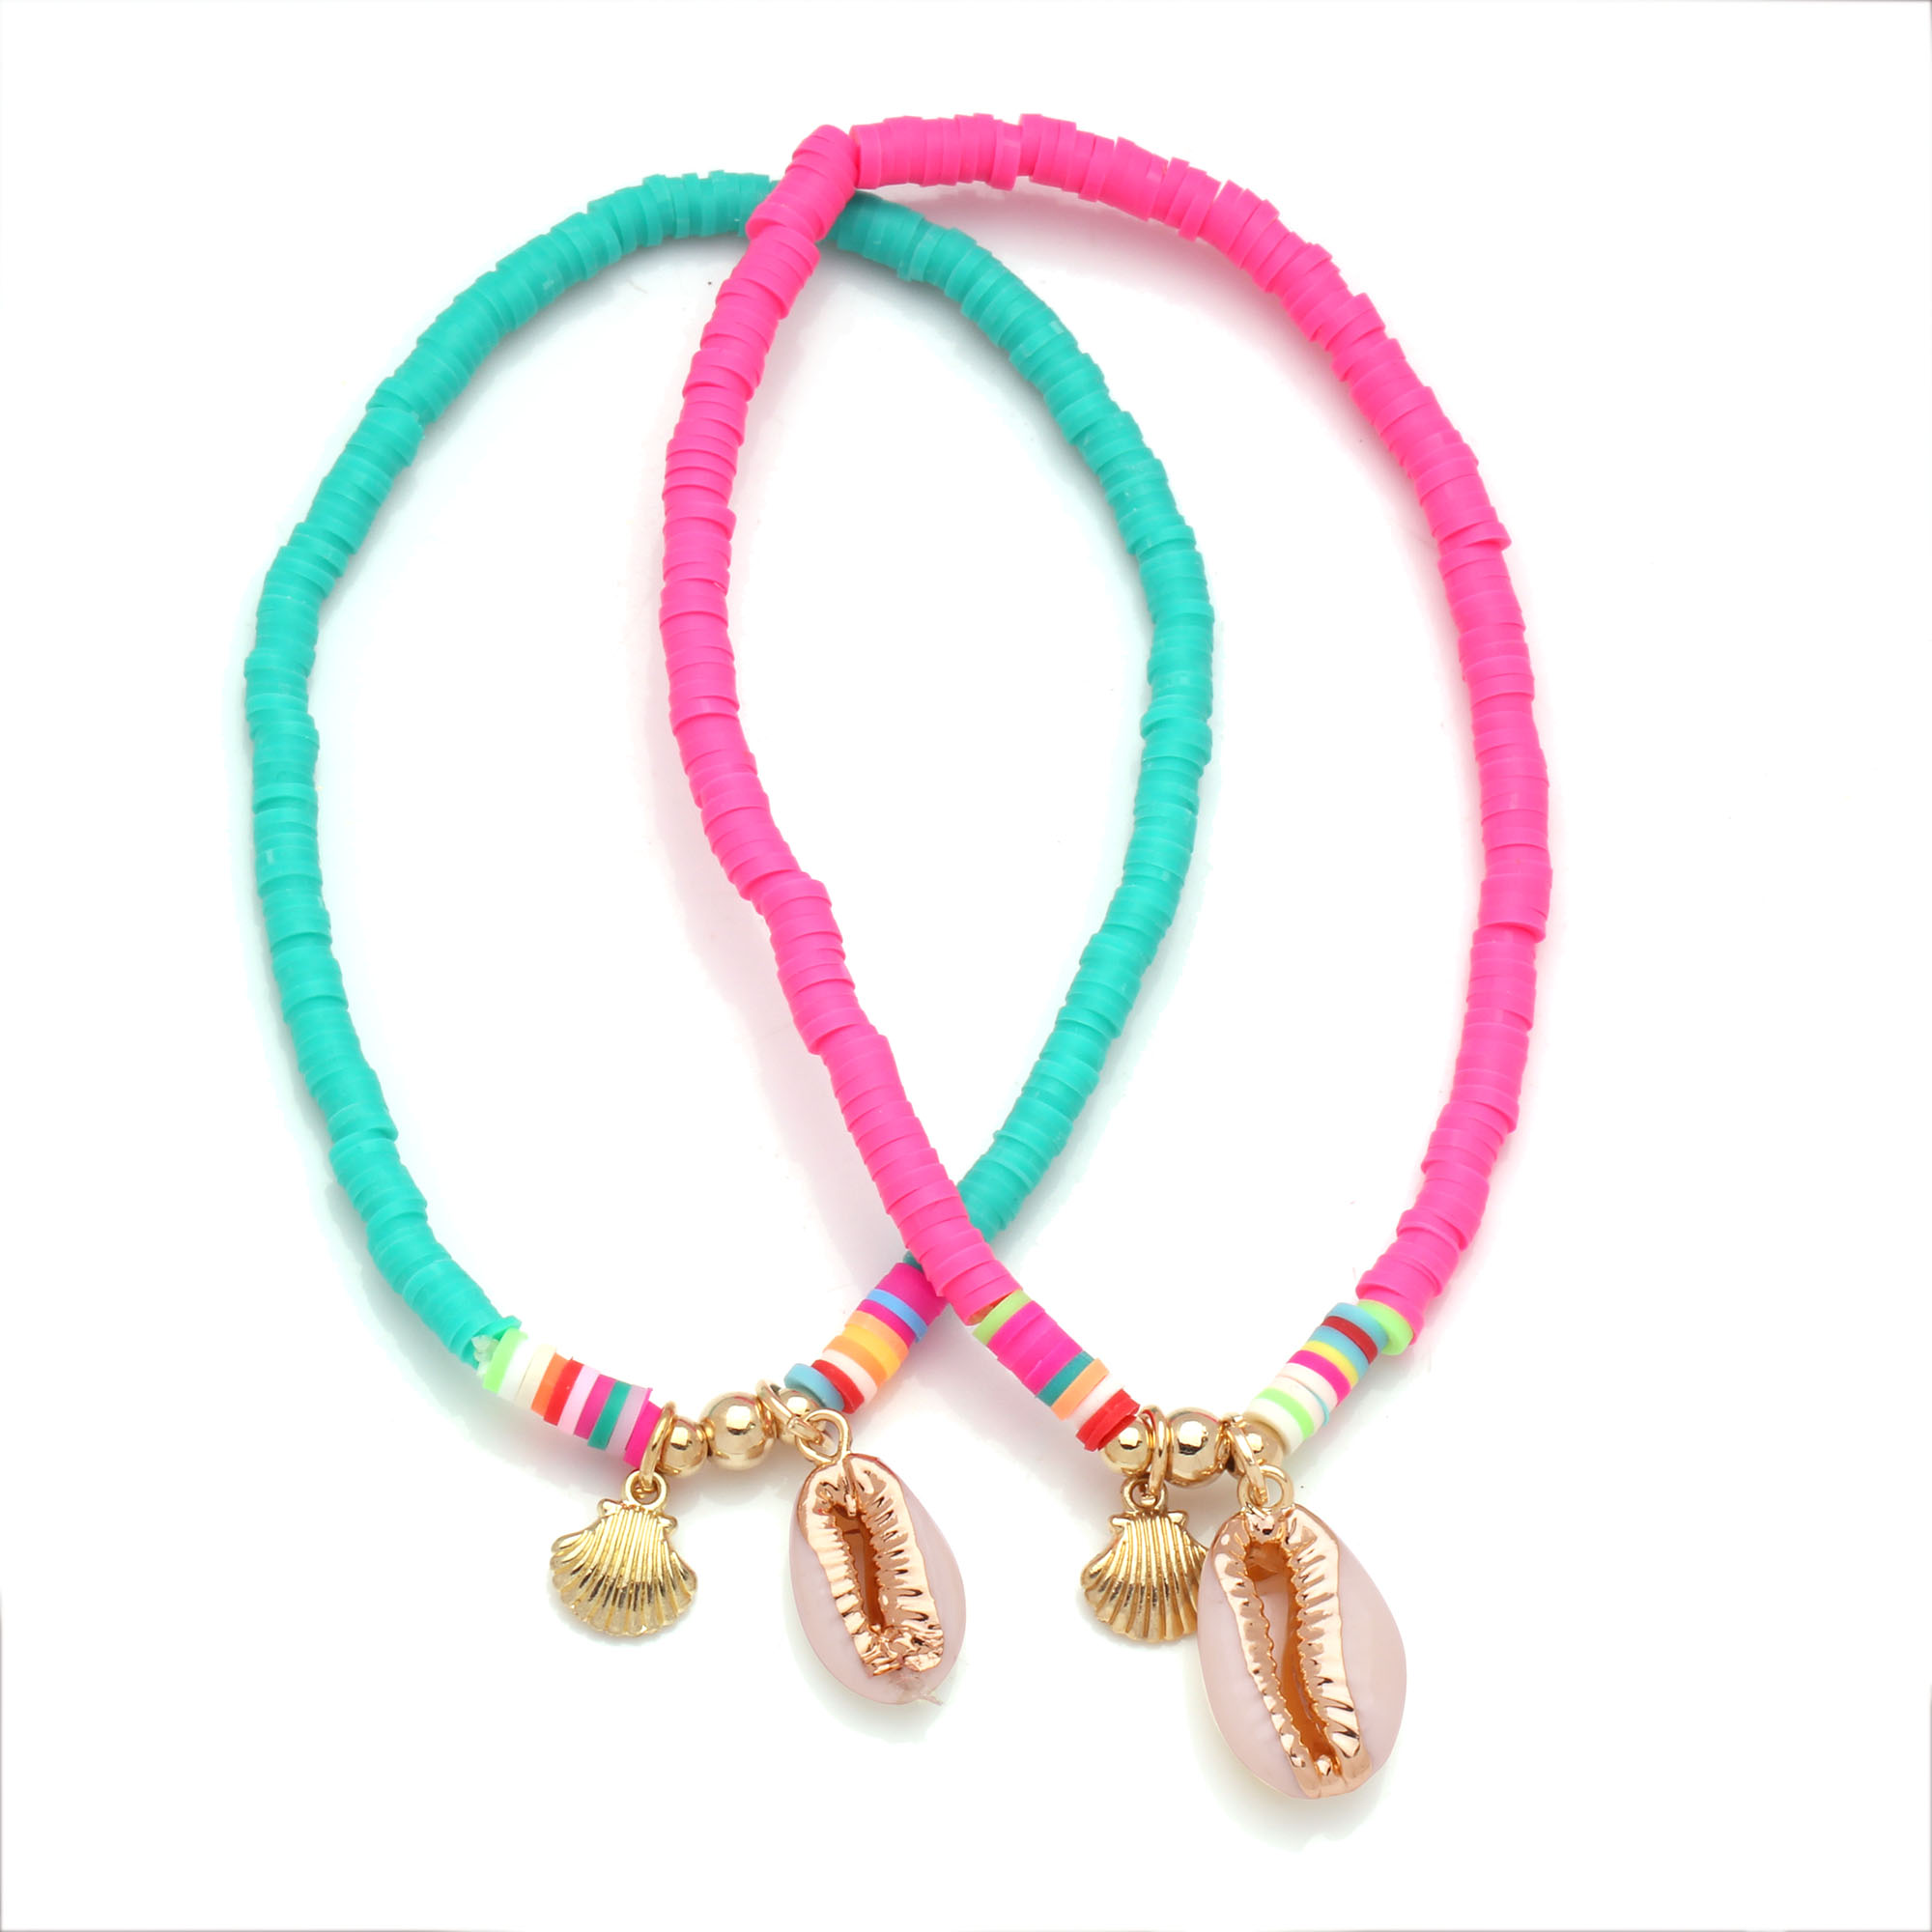 Polymer Clay Beads Cowrie Seashell Sea Fan Charm Stretch Heishi Anklet Women Men 2020 New Fashion Pink Elastic Thread Jewelry